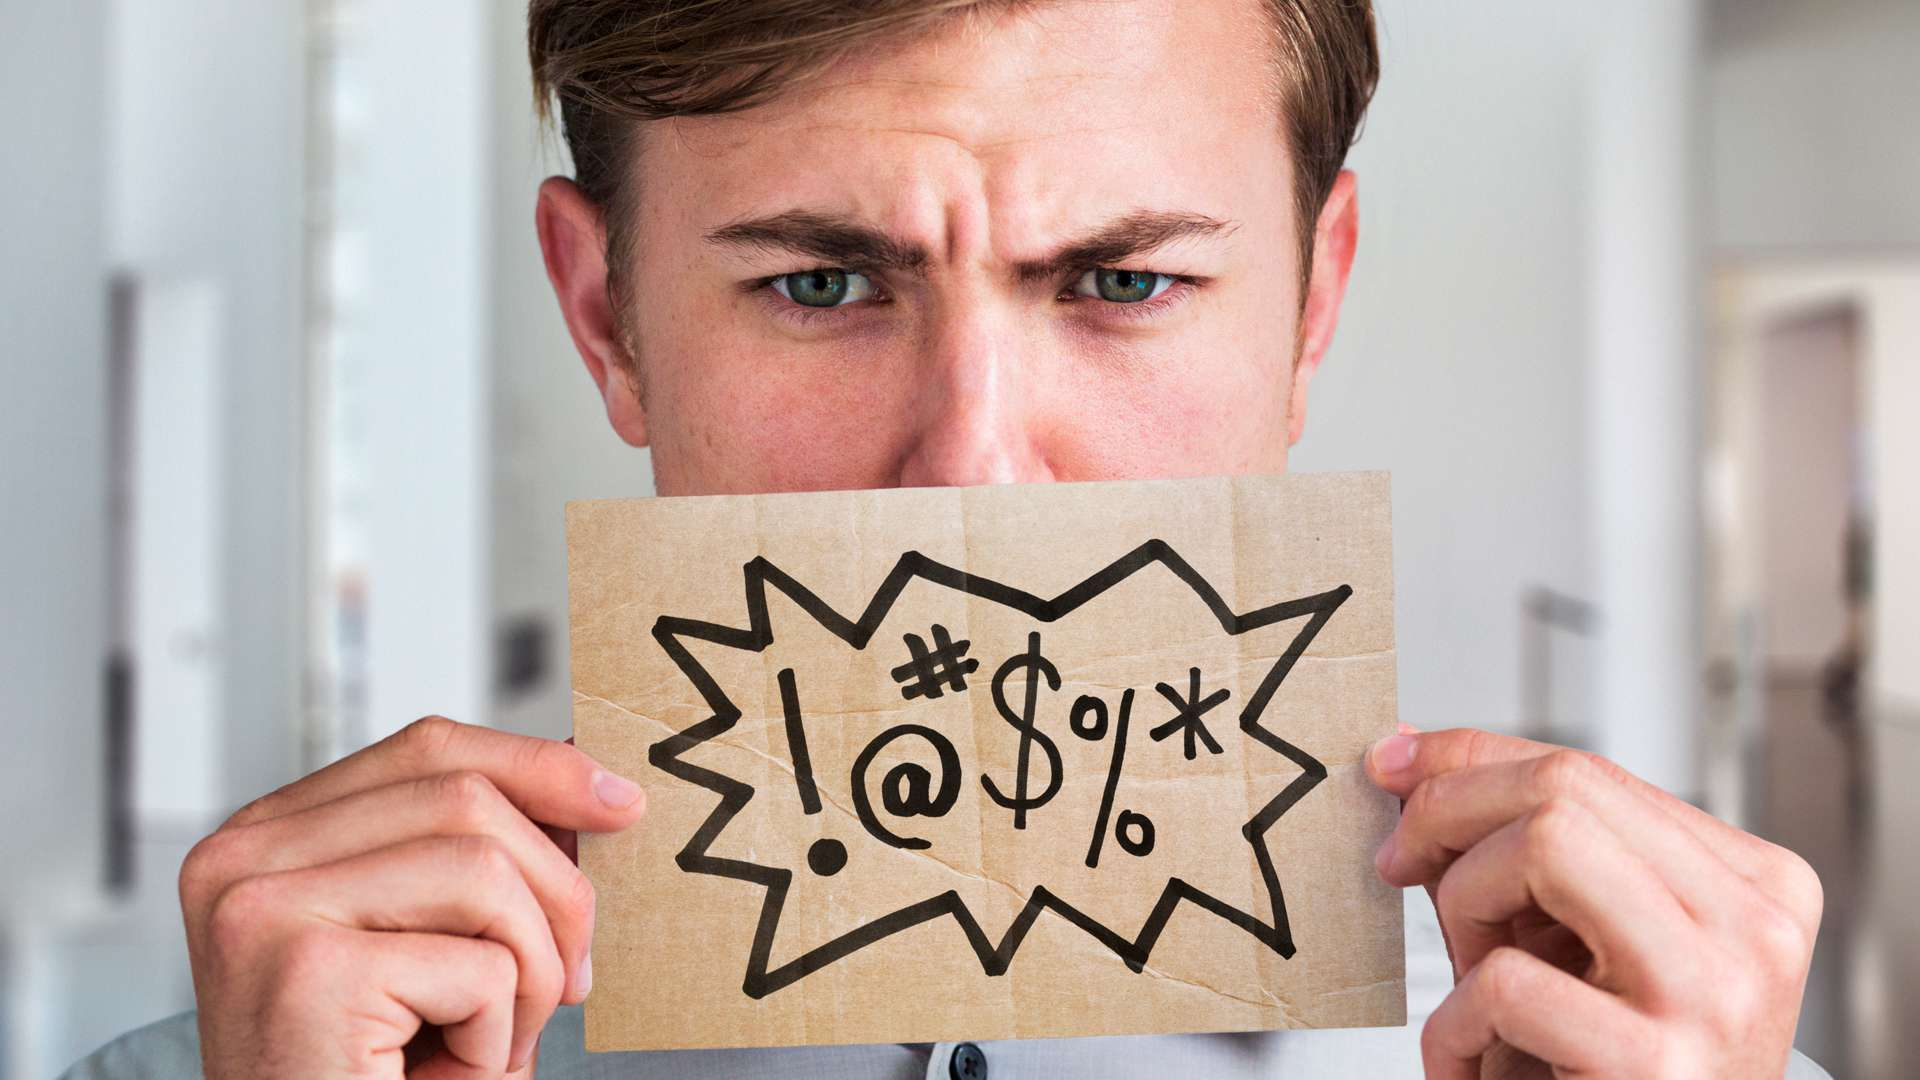 Man holding up a piece of cardboard with curse symbols on it.